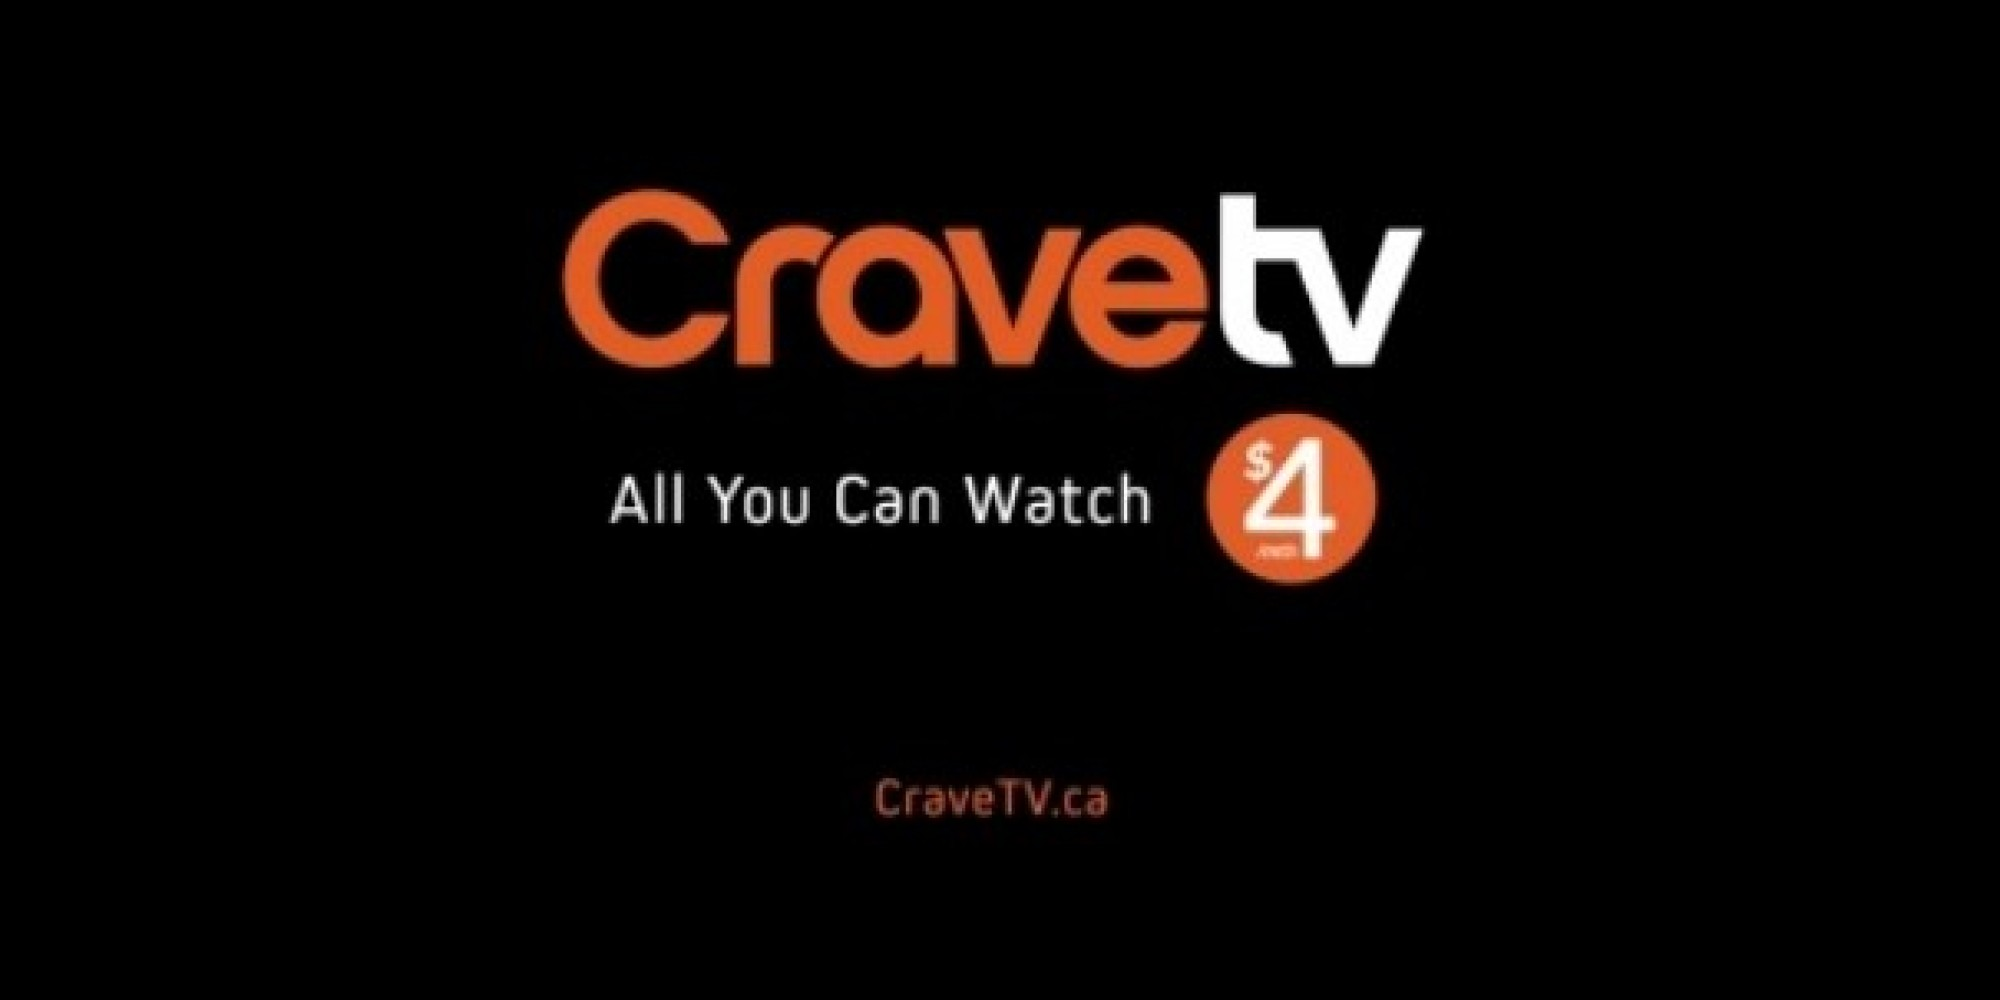 CraveTV is an on-demand video streaming service thats all about great television. CraveTV brings you thousands of hours of TV programming we know youll love. Weve got HBO classic series, the best sitcoms in TV history, todays top shows and Canadian exclusive original series that we handpicked for TV lovers just like you.